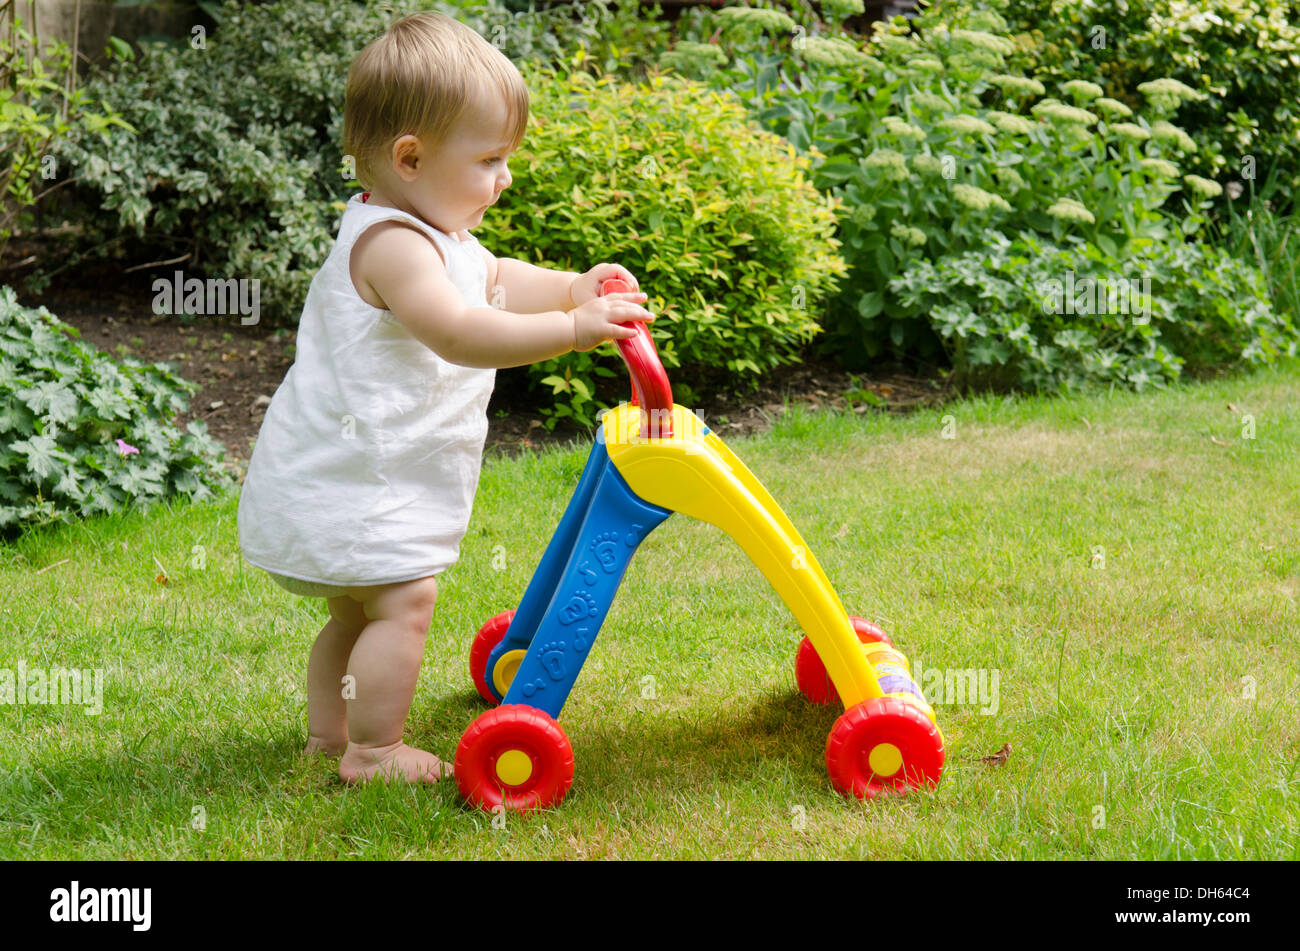 Toys For Toddlers Learning To Walk : Nine month old girl learning to walk with baby walker toy